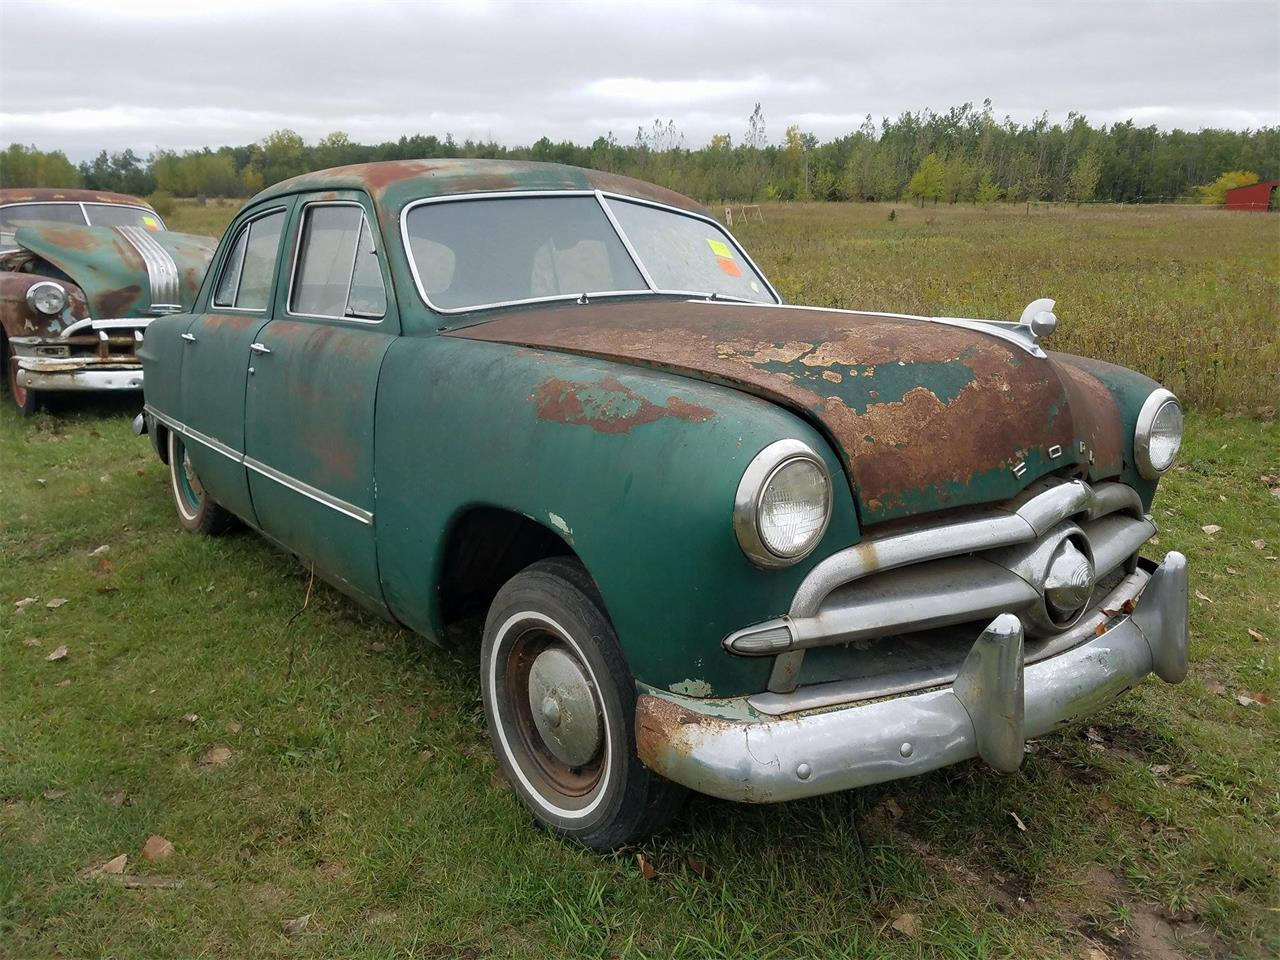 1949 Ford Sedan for sale in Thief River Falls, MN – photo 3